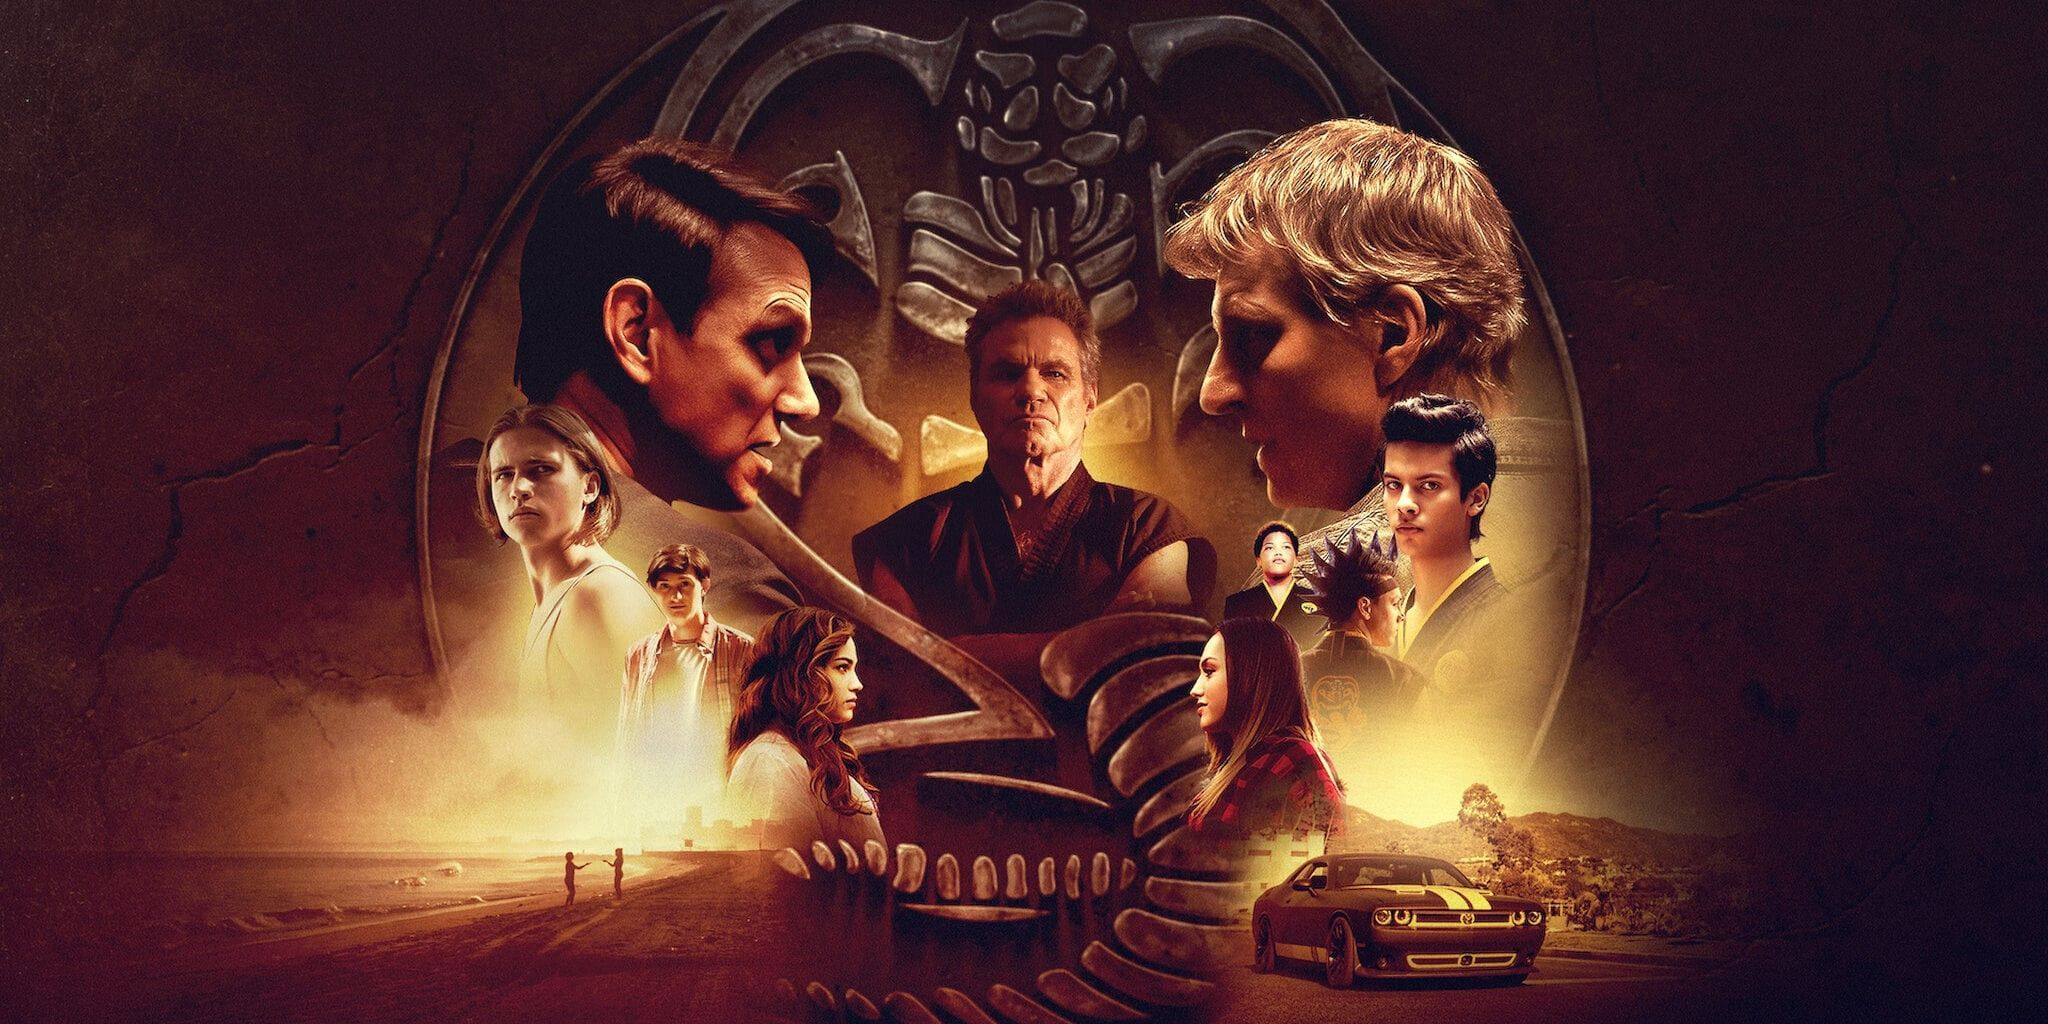 Cobra Kai Season 4 Latest Updates: Release Date, Story and More